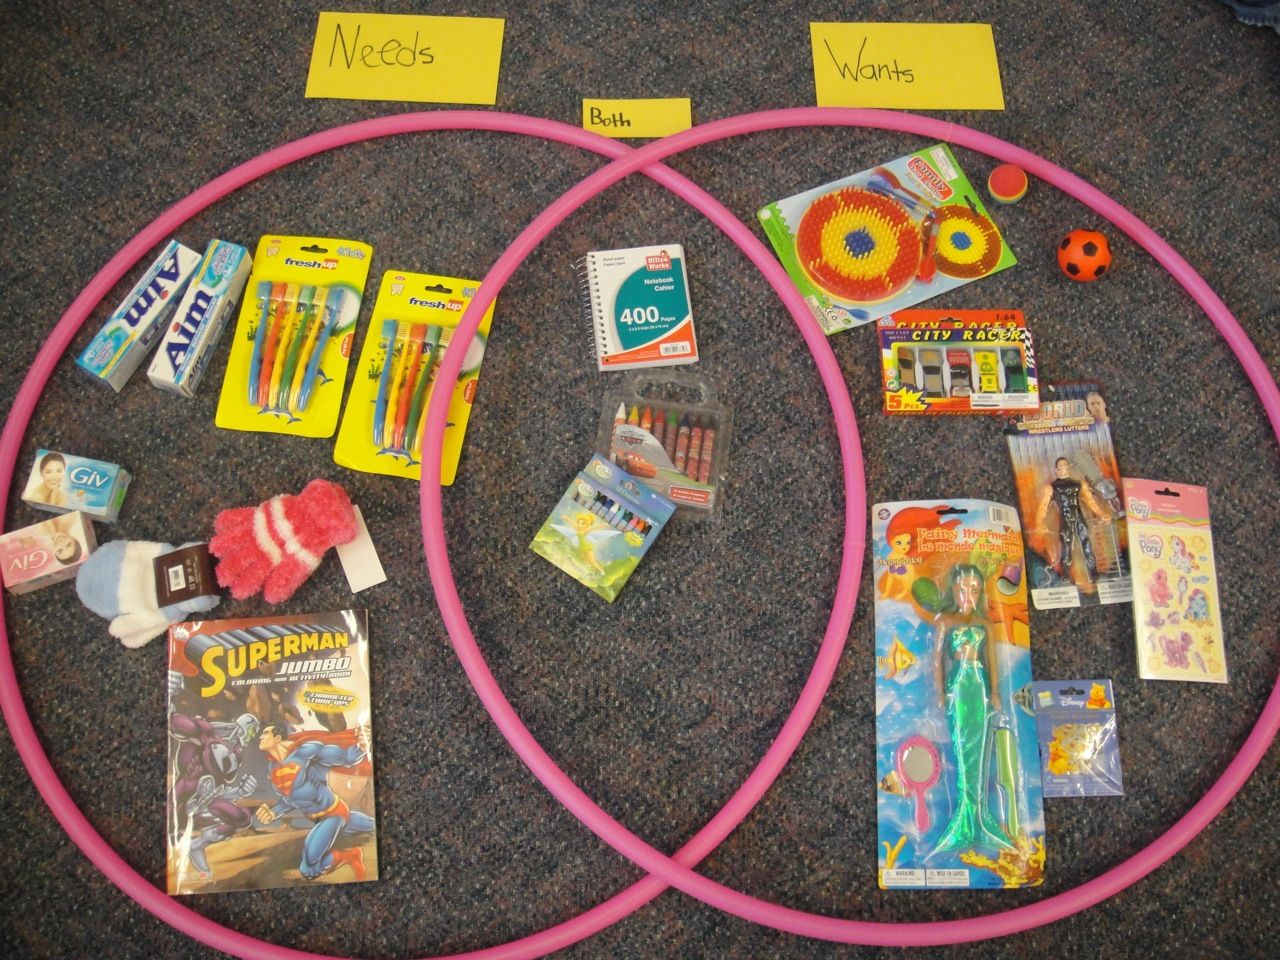 Needs Vs Wants I Would Use Different Items In The Needs Section But I Like The Hands On Venn